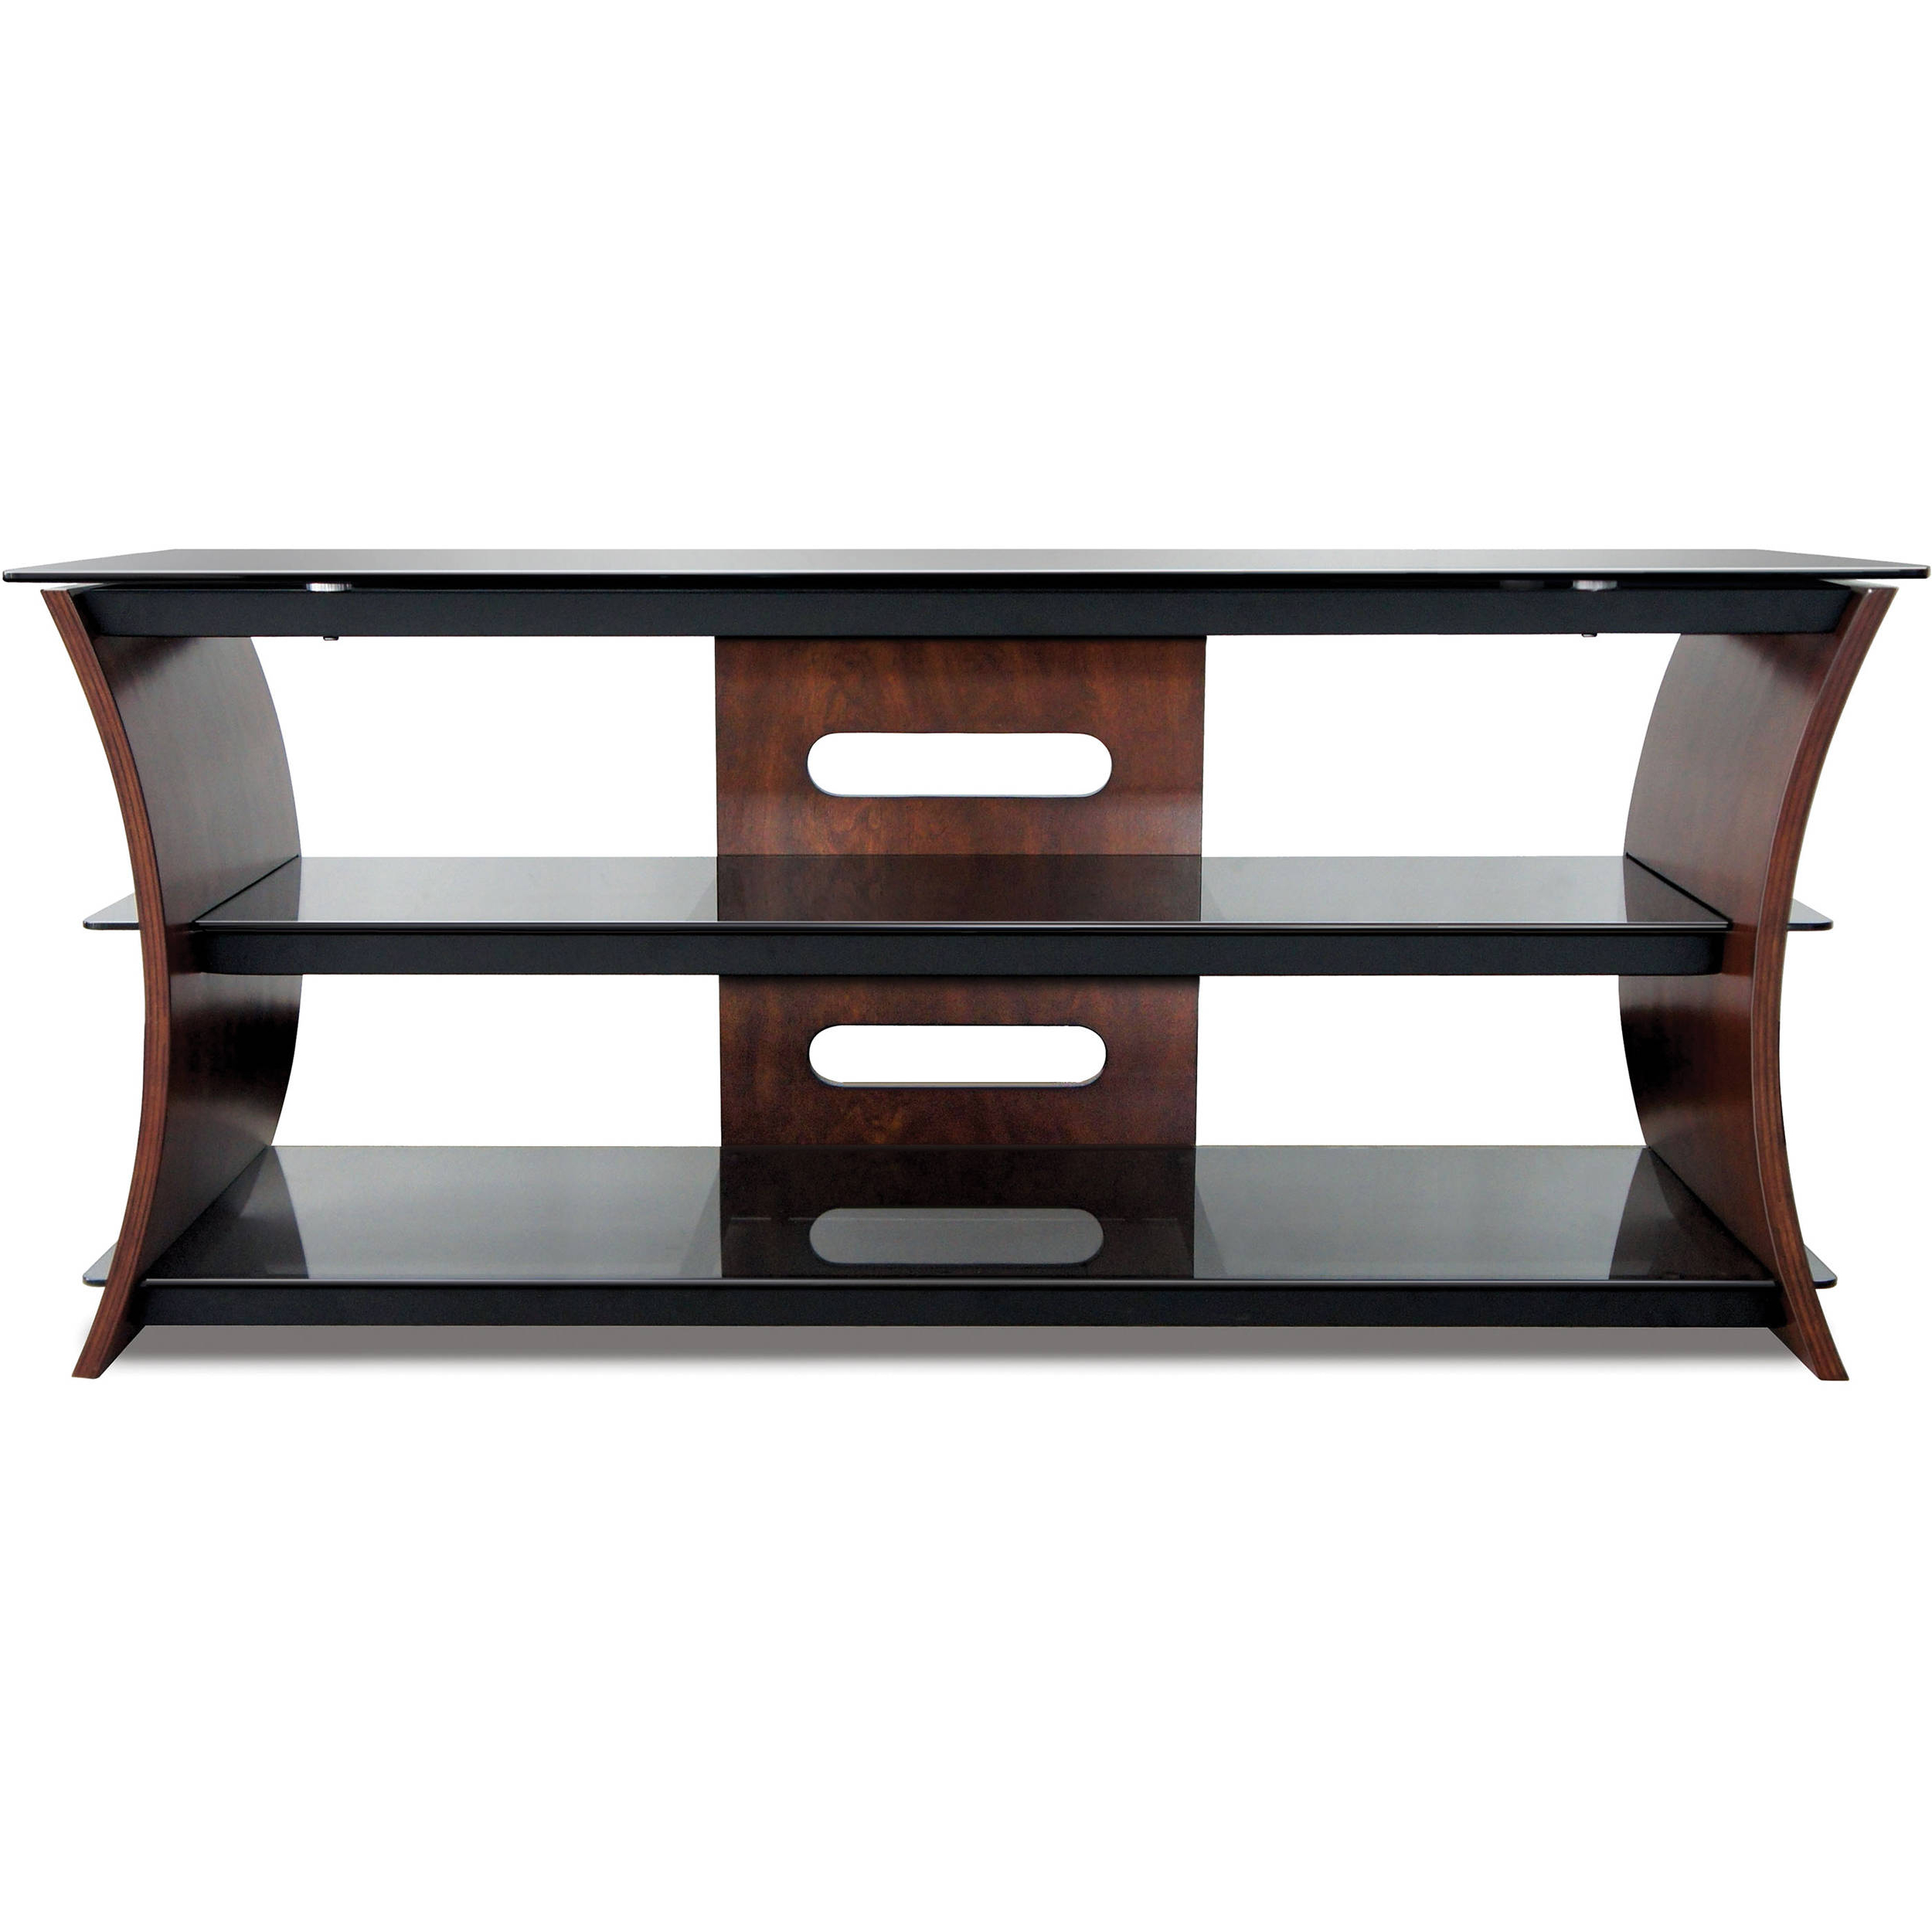 Widely Used Wood Tv Stands Inside Bell'o Cw356 Curved Wood Tv Stand Cw356 B&h Photo Video (View 16 of 20)